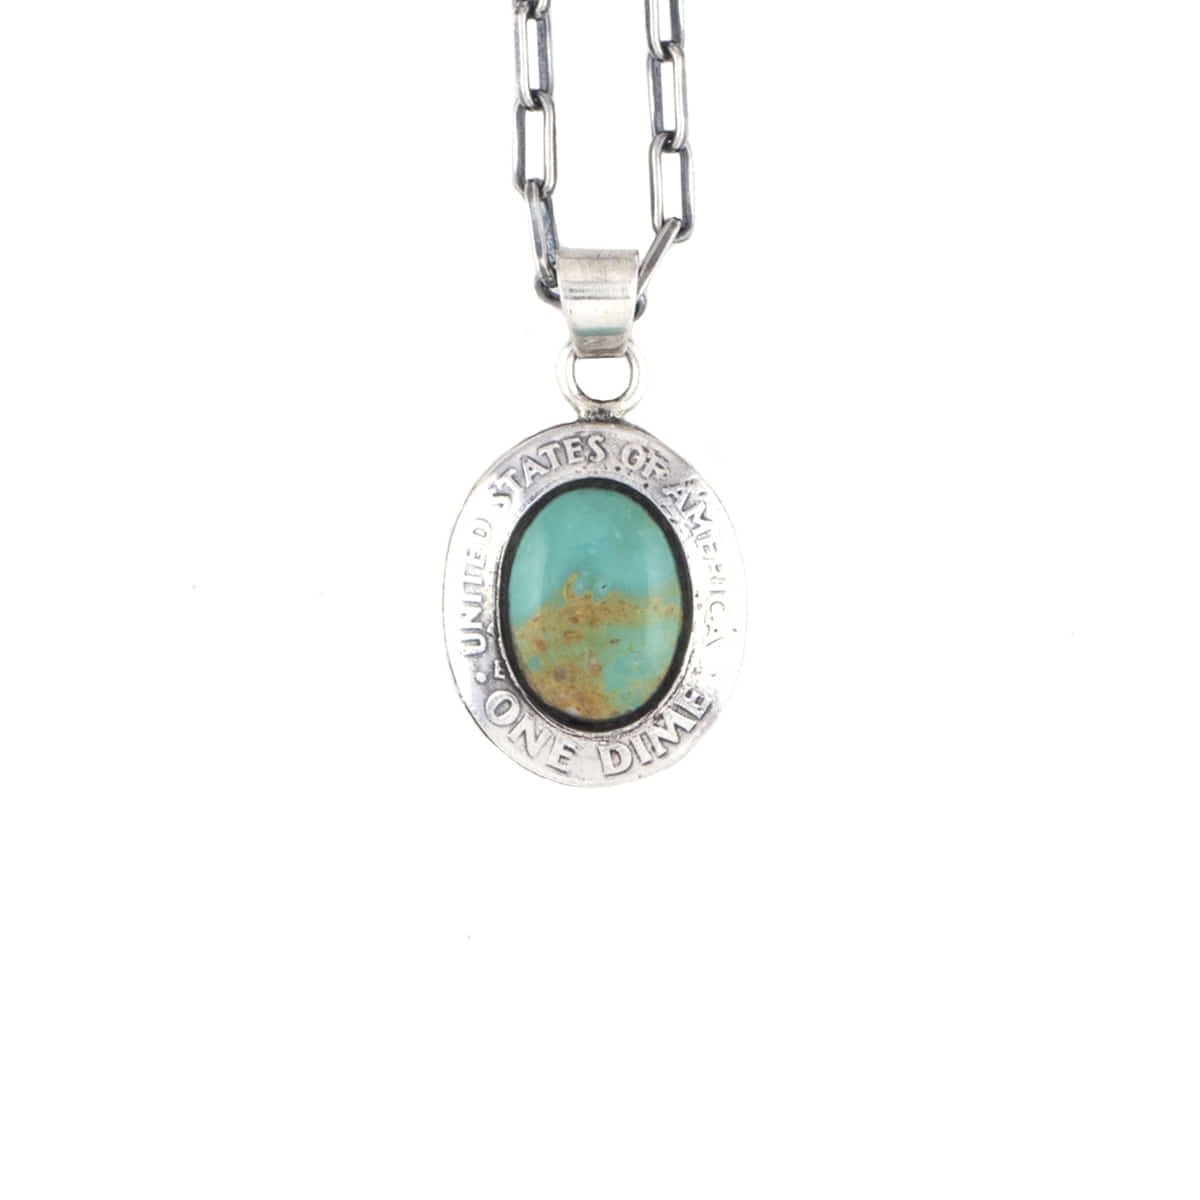 [NORTH WORKS] TURQUOISE PENDANT NECKLACE 'N-611'